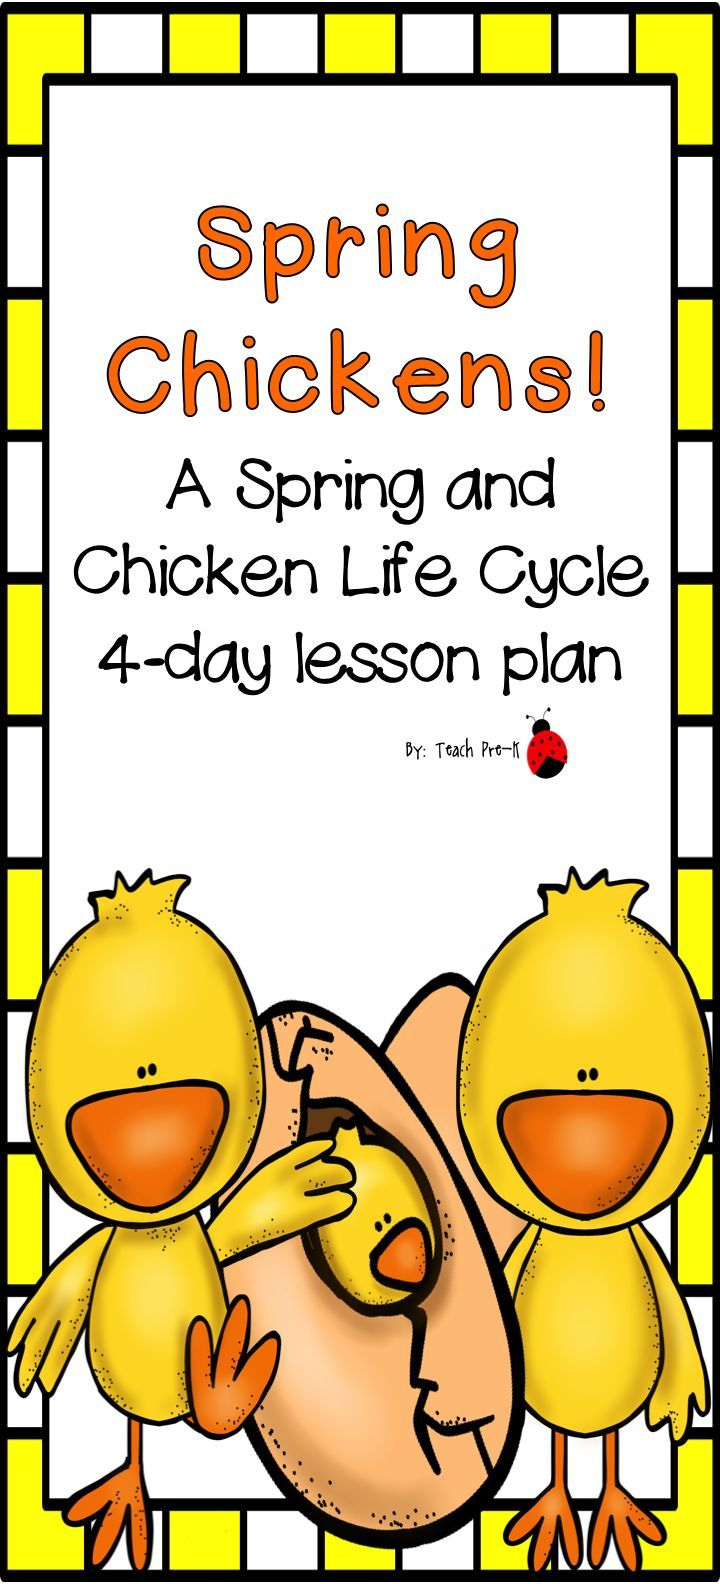 Spring chickens a spring and life cycle of a chicken lesson plan spring chickens a spring and life cycle of a chicken lesson plan robcynllc Choice Image